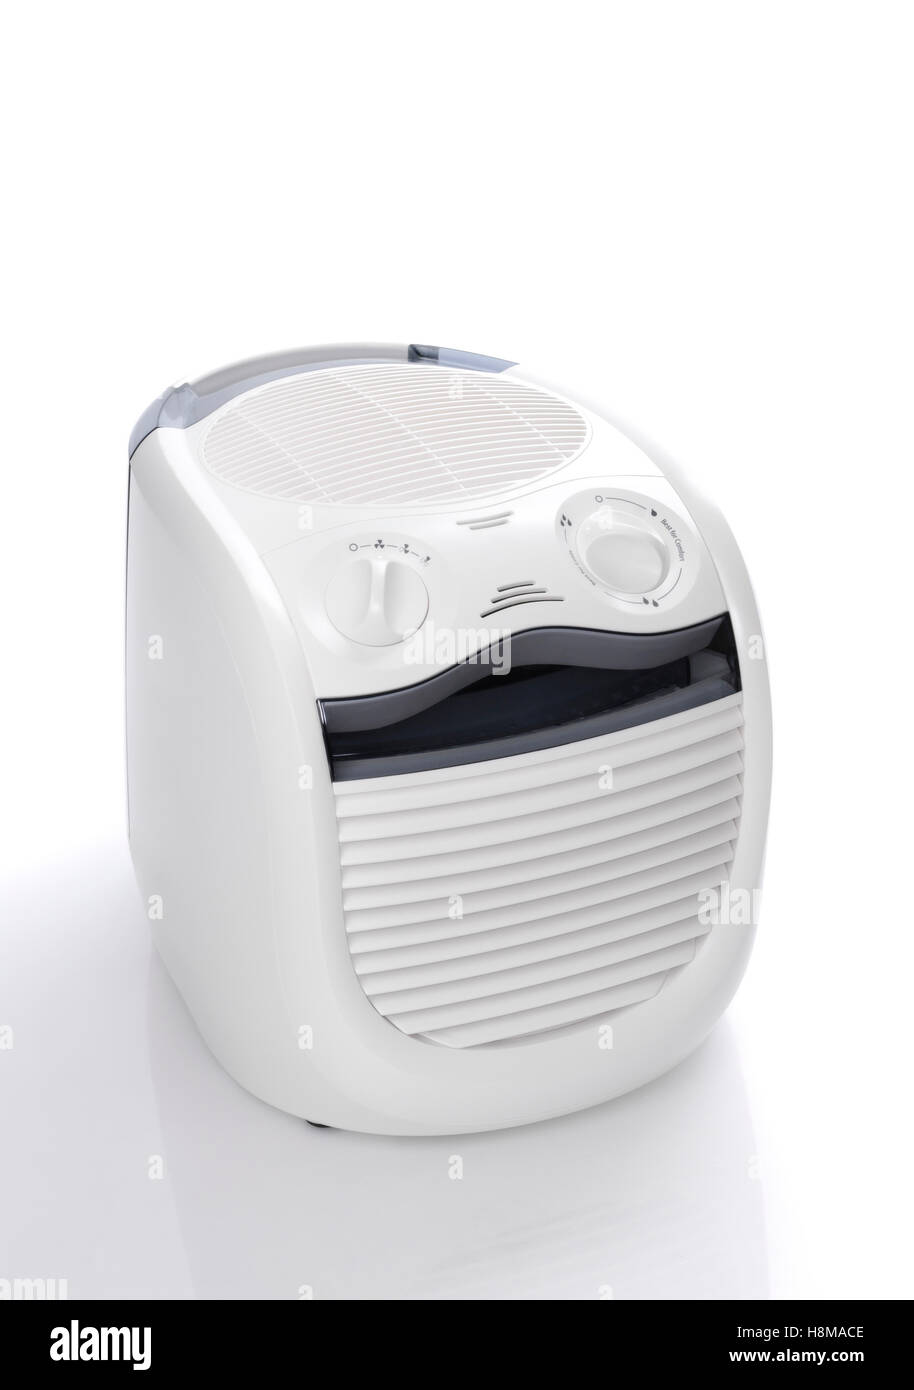 Air humidifier, home appliance - Stock Image